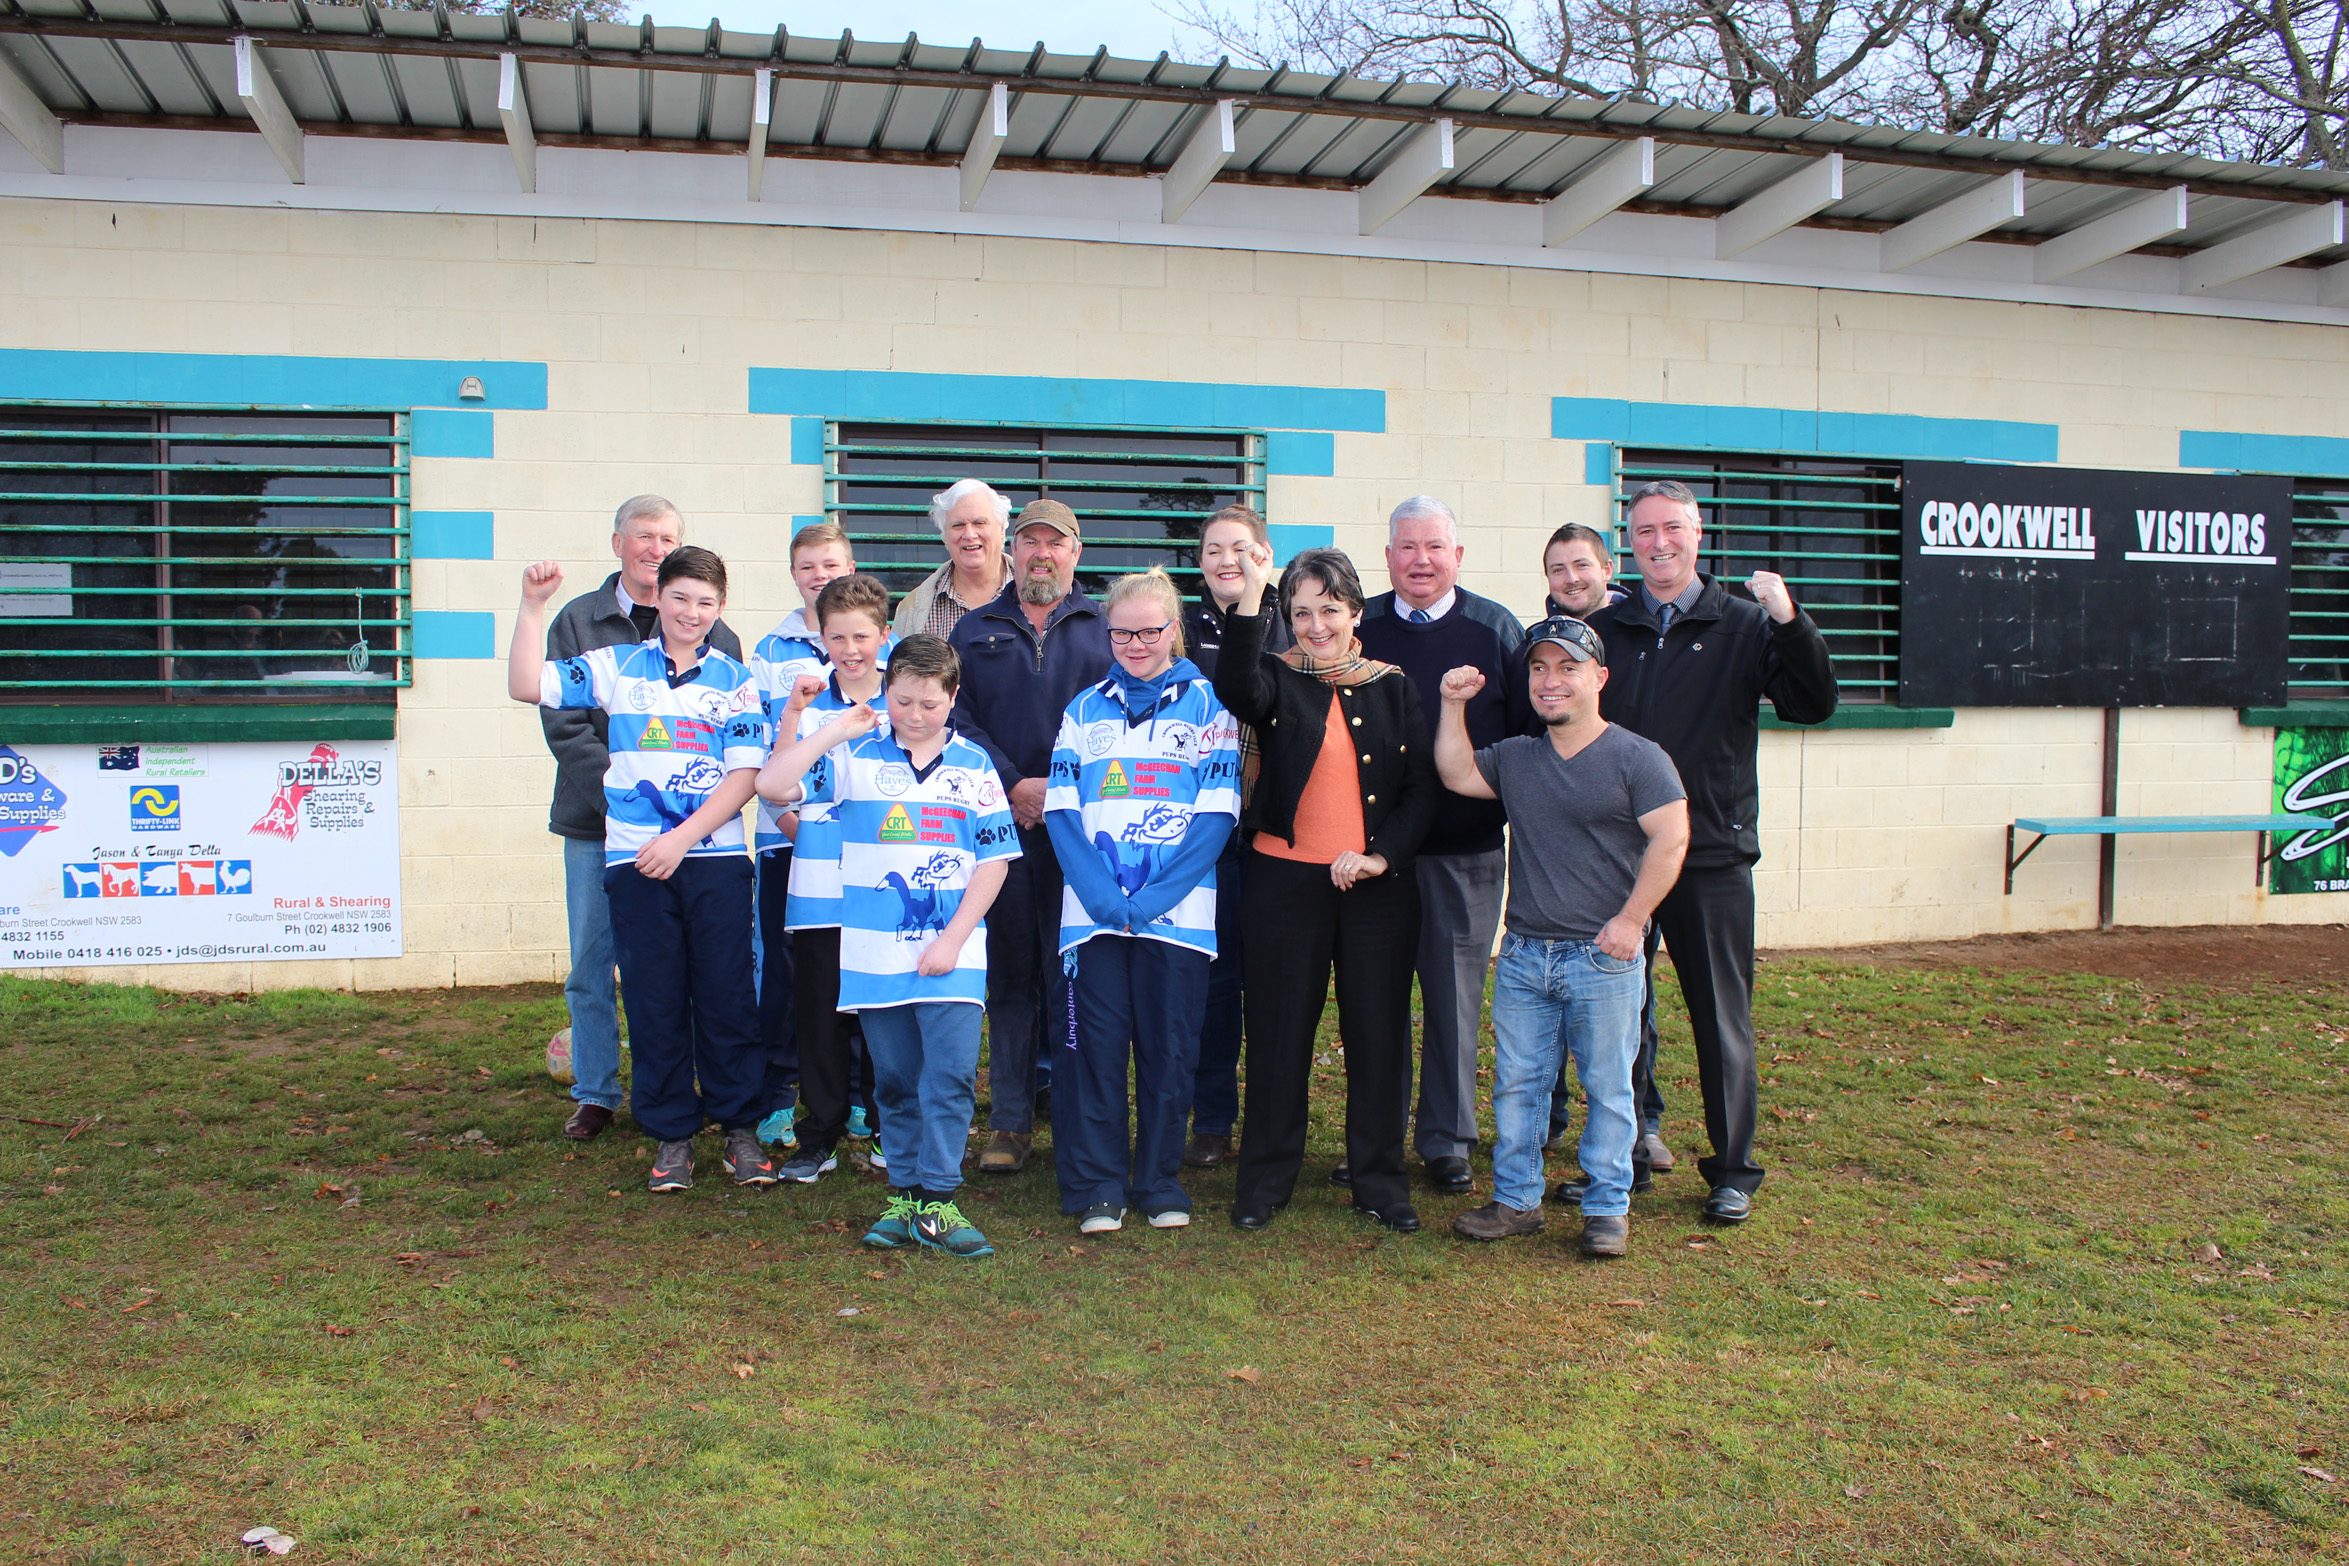 L-R: Barbell Club President John Broderick, The Pups' Lachlan Vallender, Jack Page, Angus Smith and Logan Croke, Crookwell Rotary Club Secretary Peter Cullen, Crookwell Junior Rugby Union's John McCue, The Pups' Emma Page, Crookwell Senior Rugby Club's Ally Horan, Member for Goulburn Pru Goward, Upper Lachlan Shire Council Mayor Brian McCormack OAM, Barbell Club Vice President Dan Wray, Crookwell Senior Rugby League's Mitch McGeechan and Council's Acting General Manager Andrew Croke celebrate.